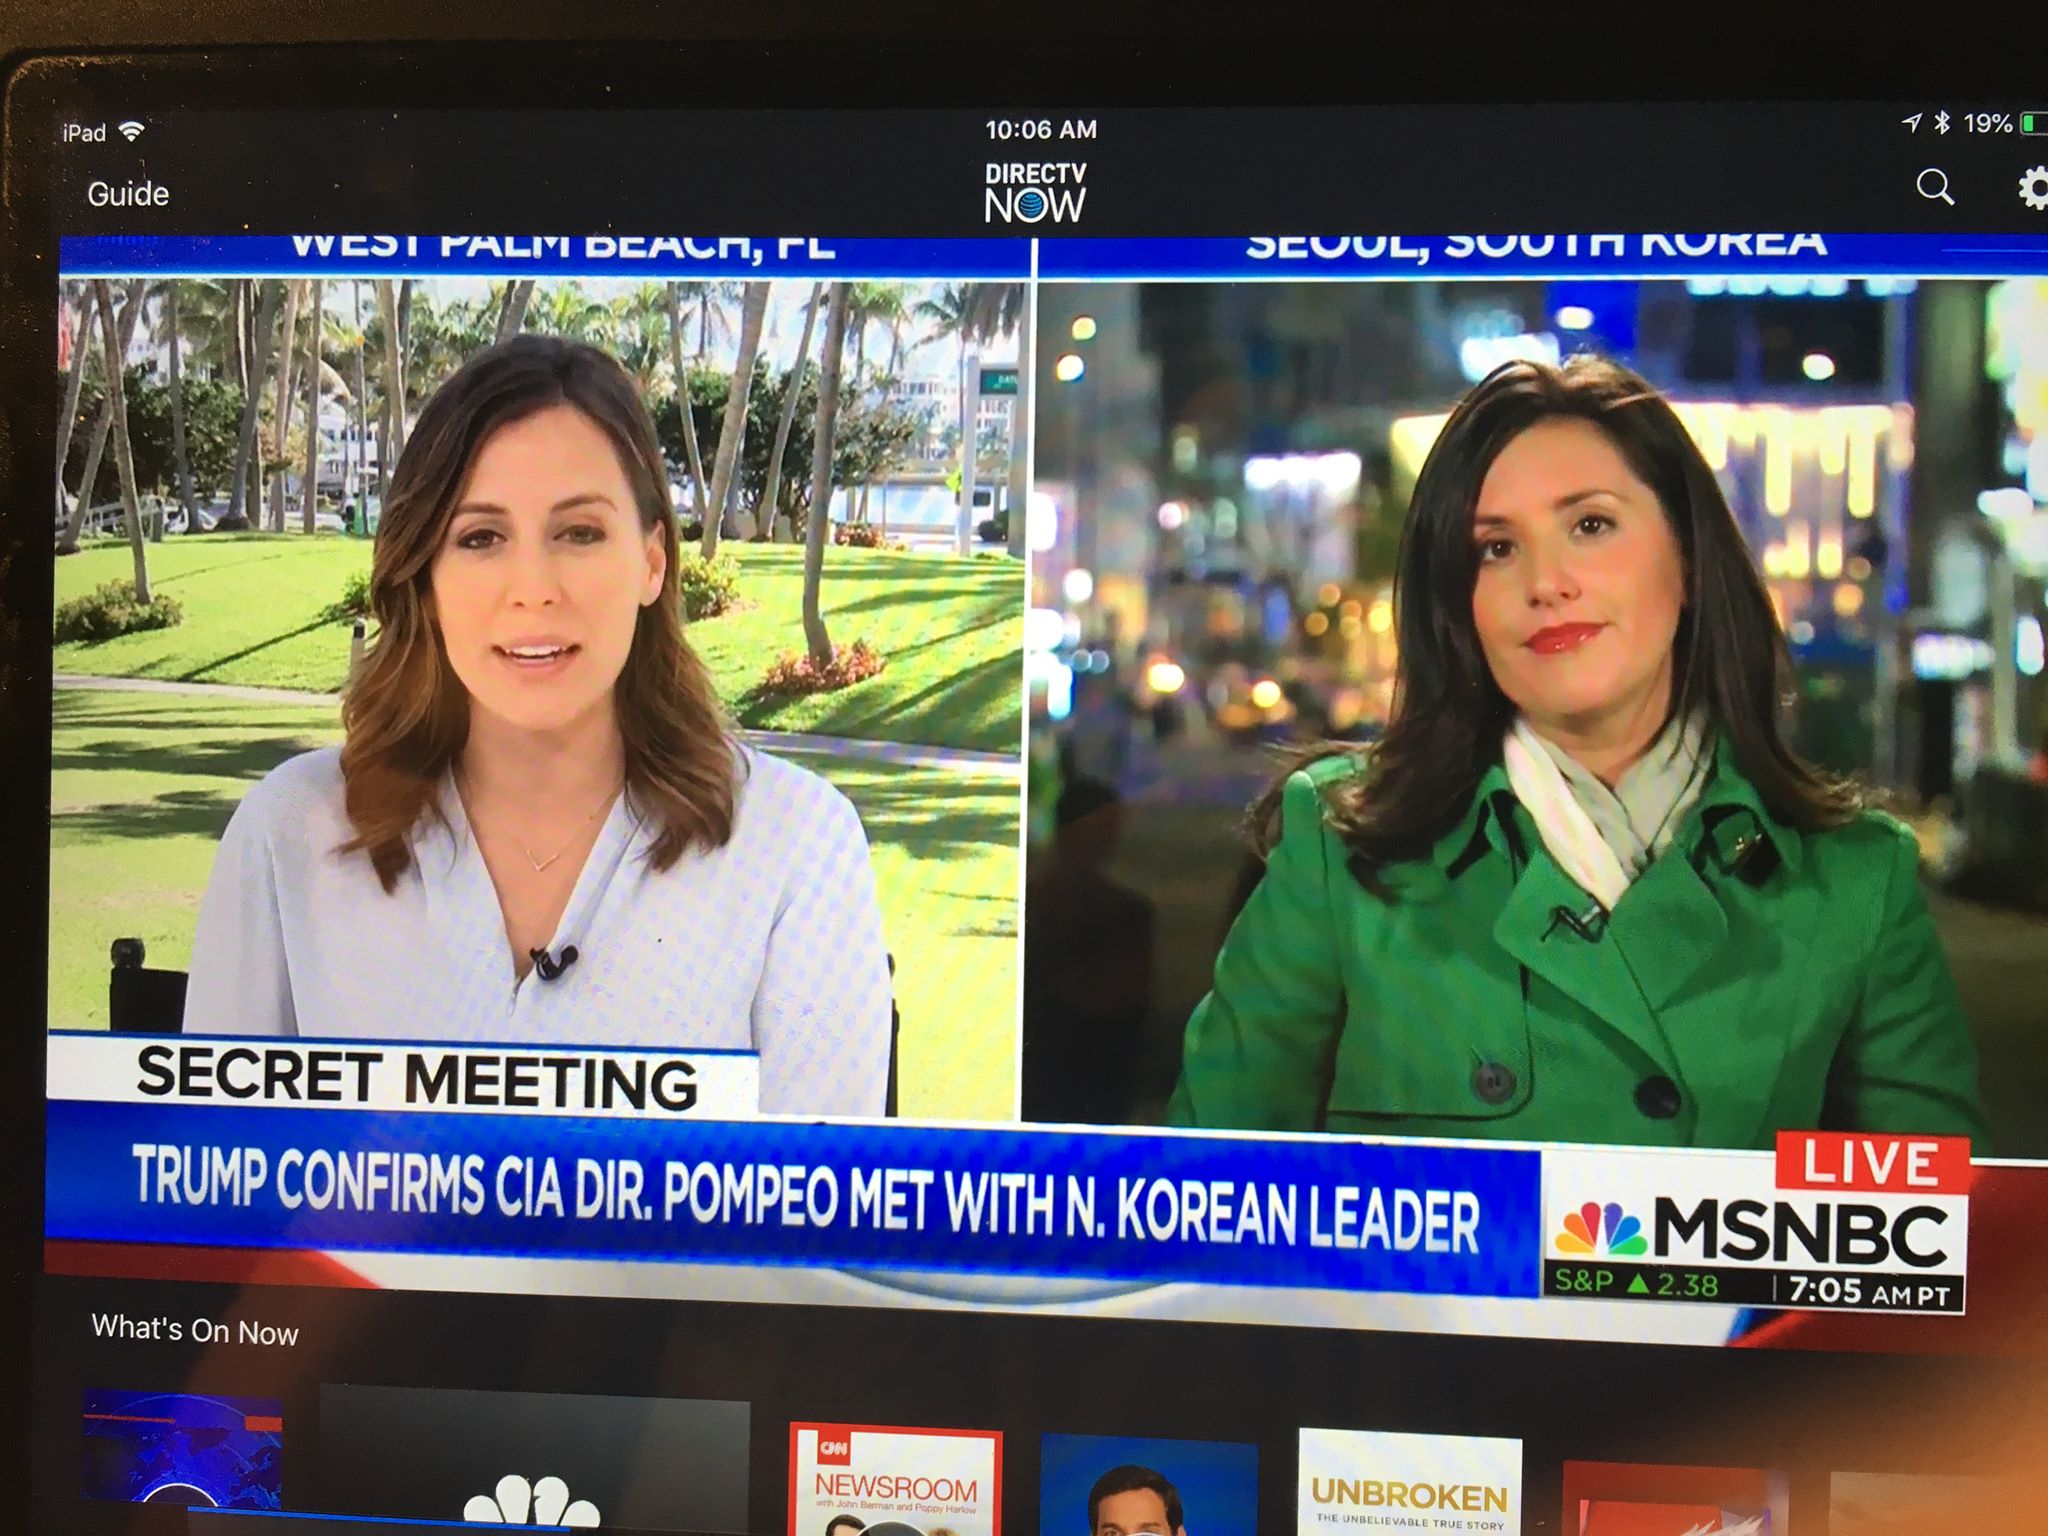 NBC's Lucy Kafanov reporting form Seoul on MSNBC with Hallie Jackson